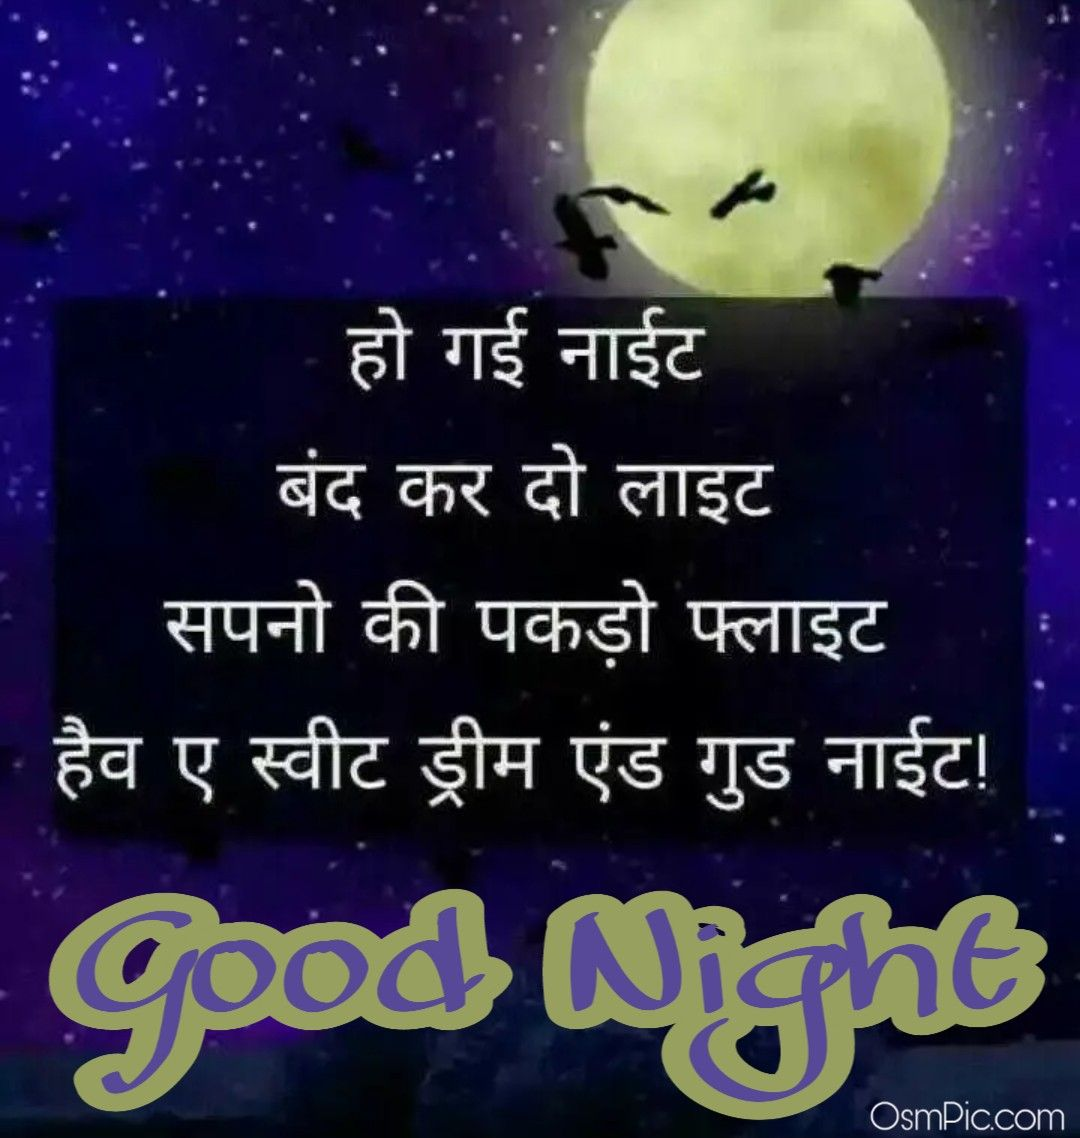 Best Good Night Images In Hindi For Whatsapp Good Night Hindi Good Night Hindi Quotes Good Night Quotes